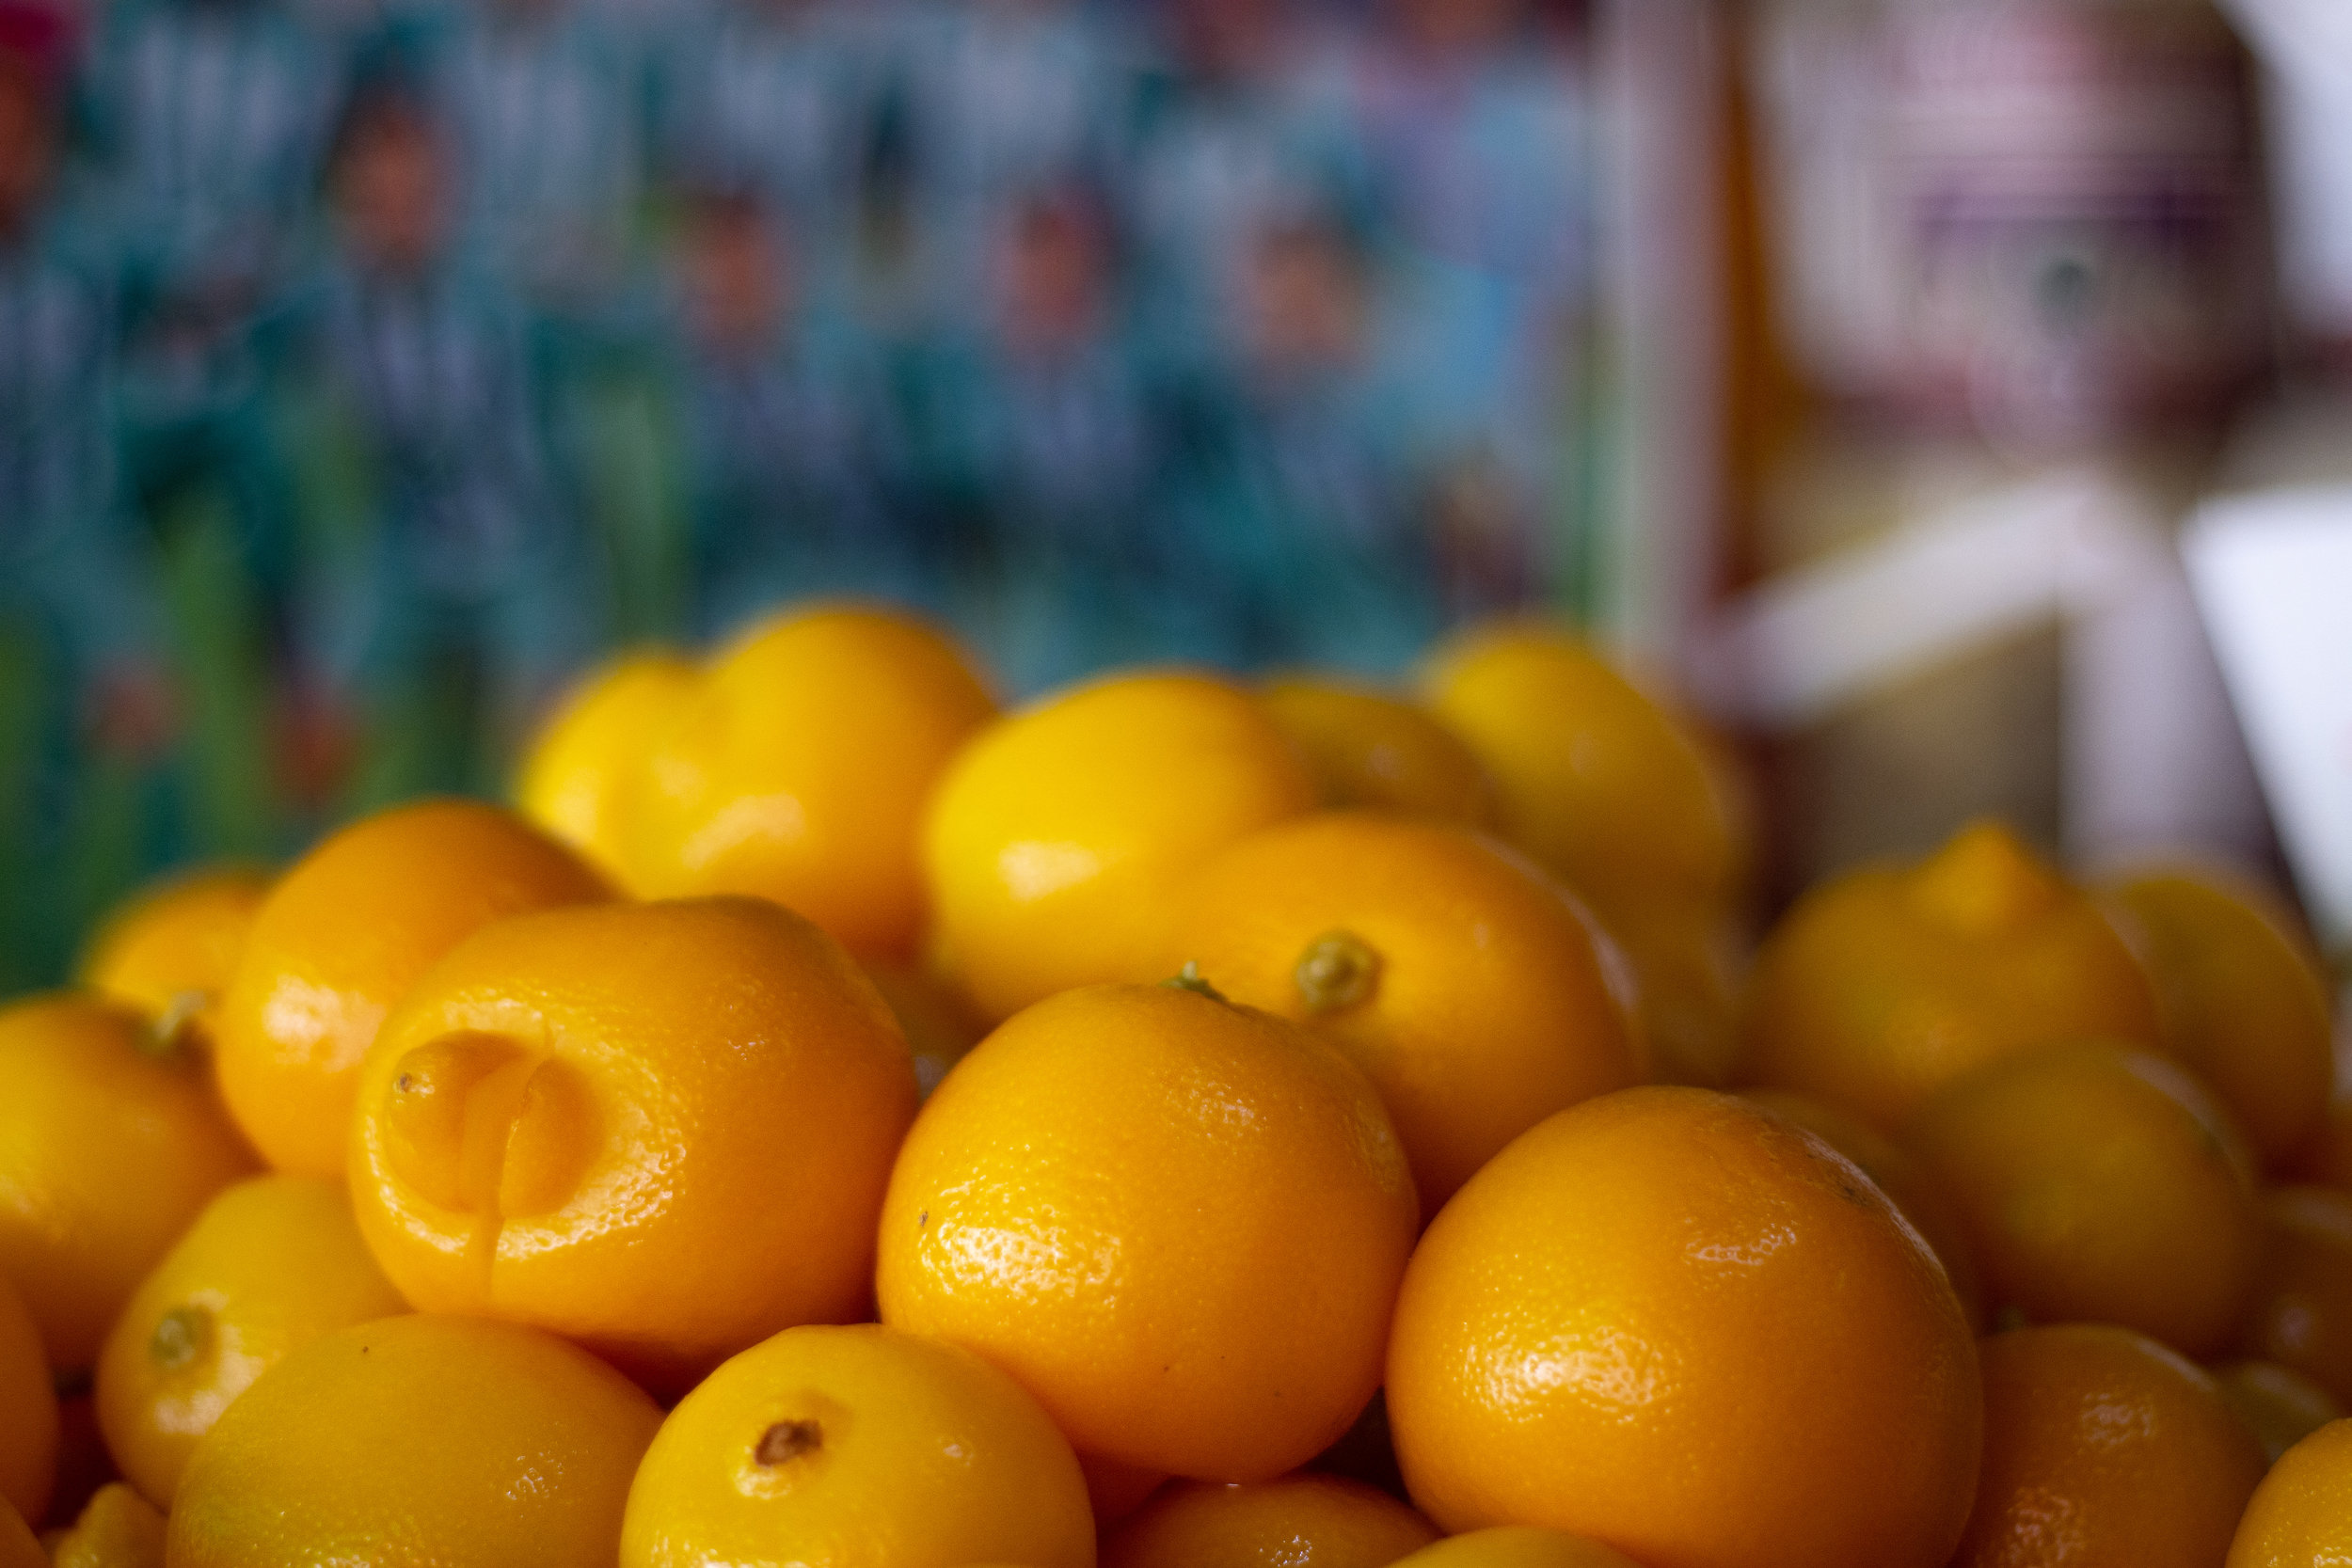 Ripe lemons, another staple ingredient in Moroccan cuisine